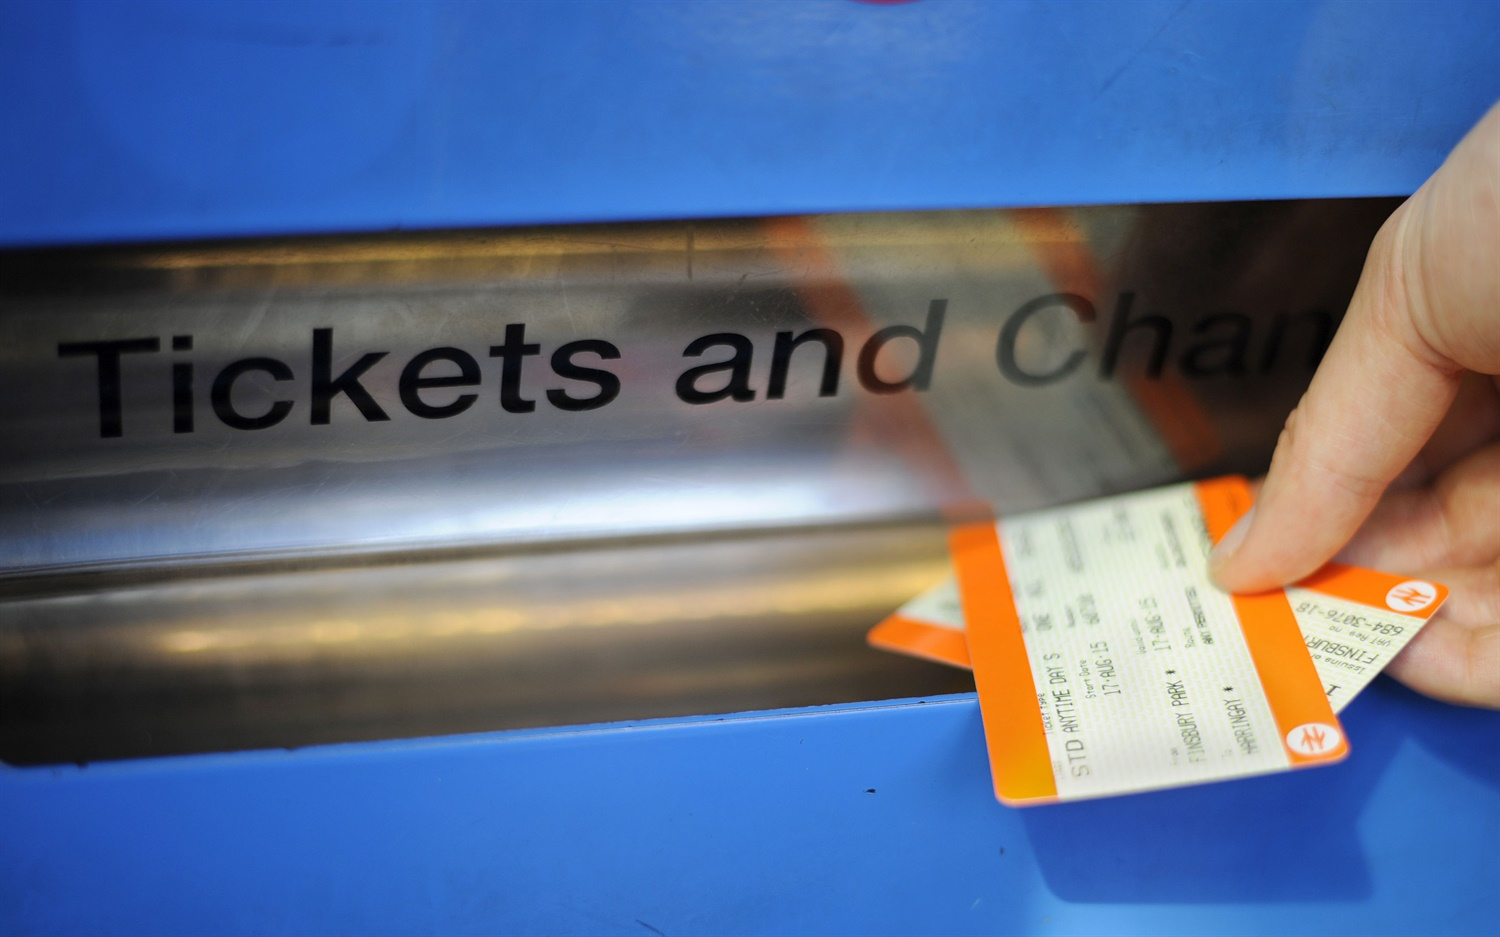 RMT launches campaign to stop closures of London Overground ticket offices